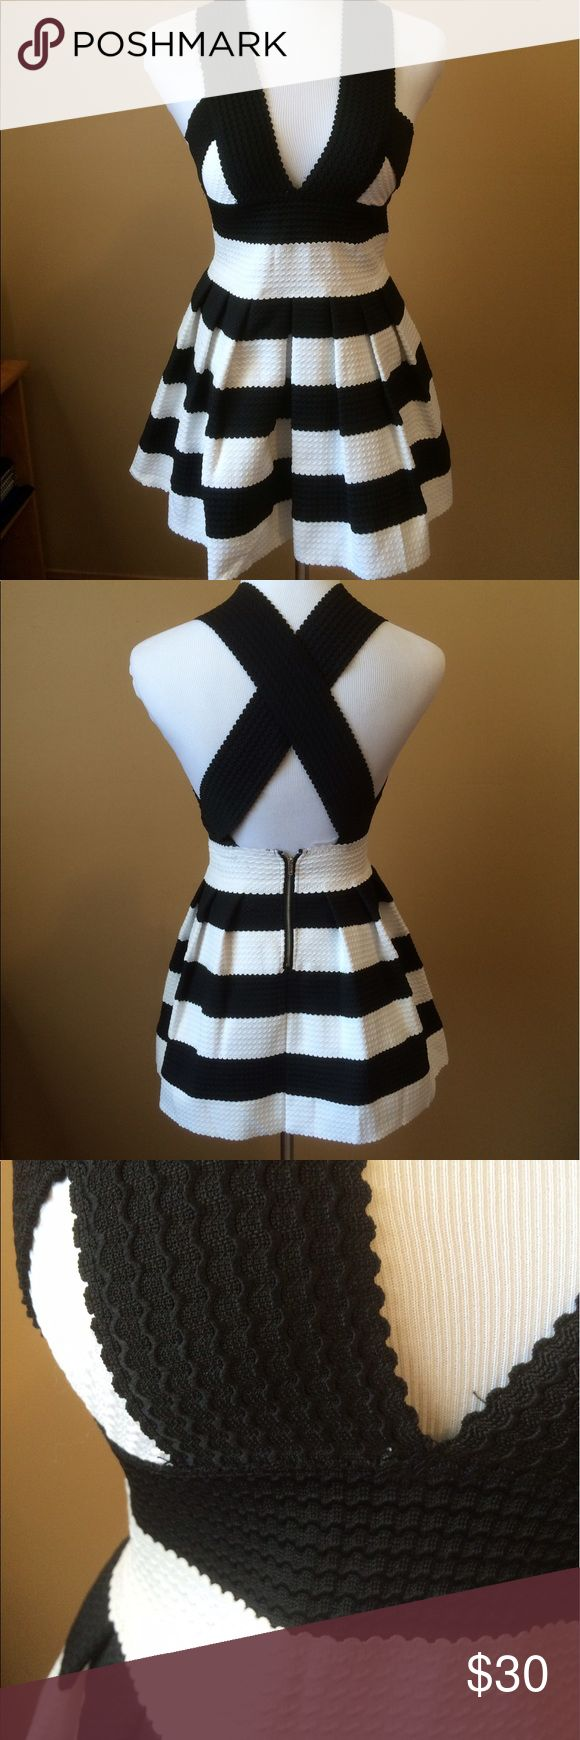 Black and white striped structured dress Black and white stripe mini dress!! Structured with a cross back. Great dress to go clubbing! Dresses Mini